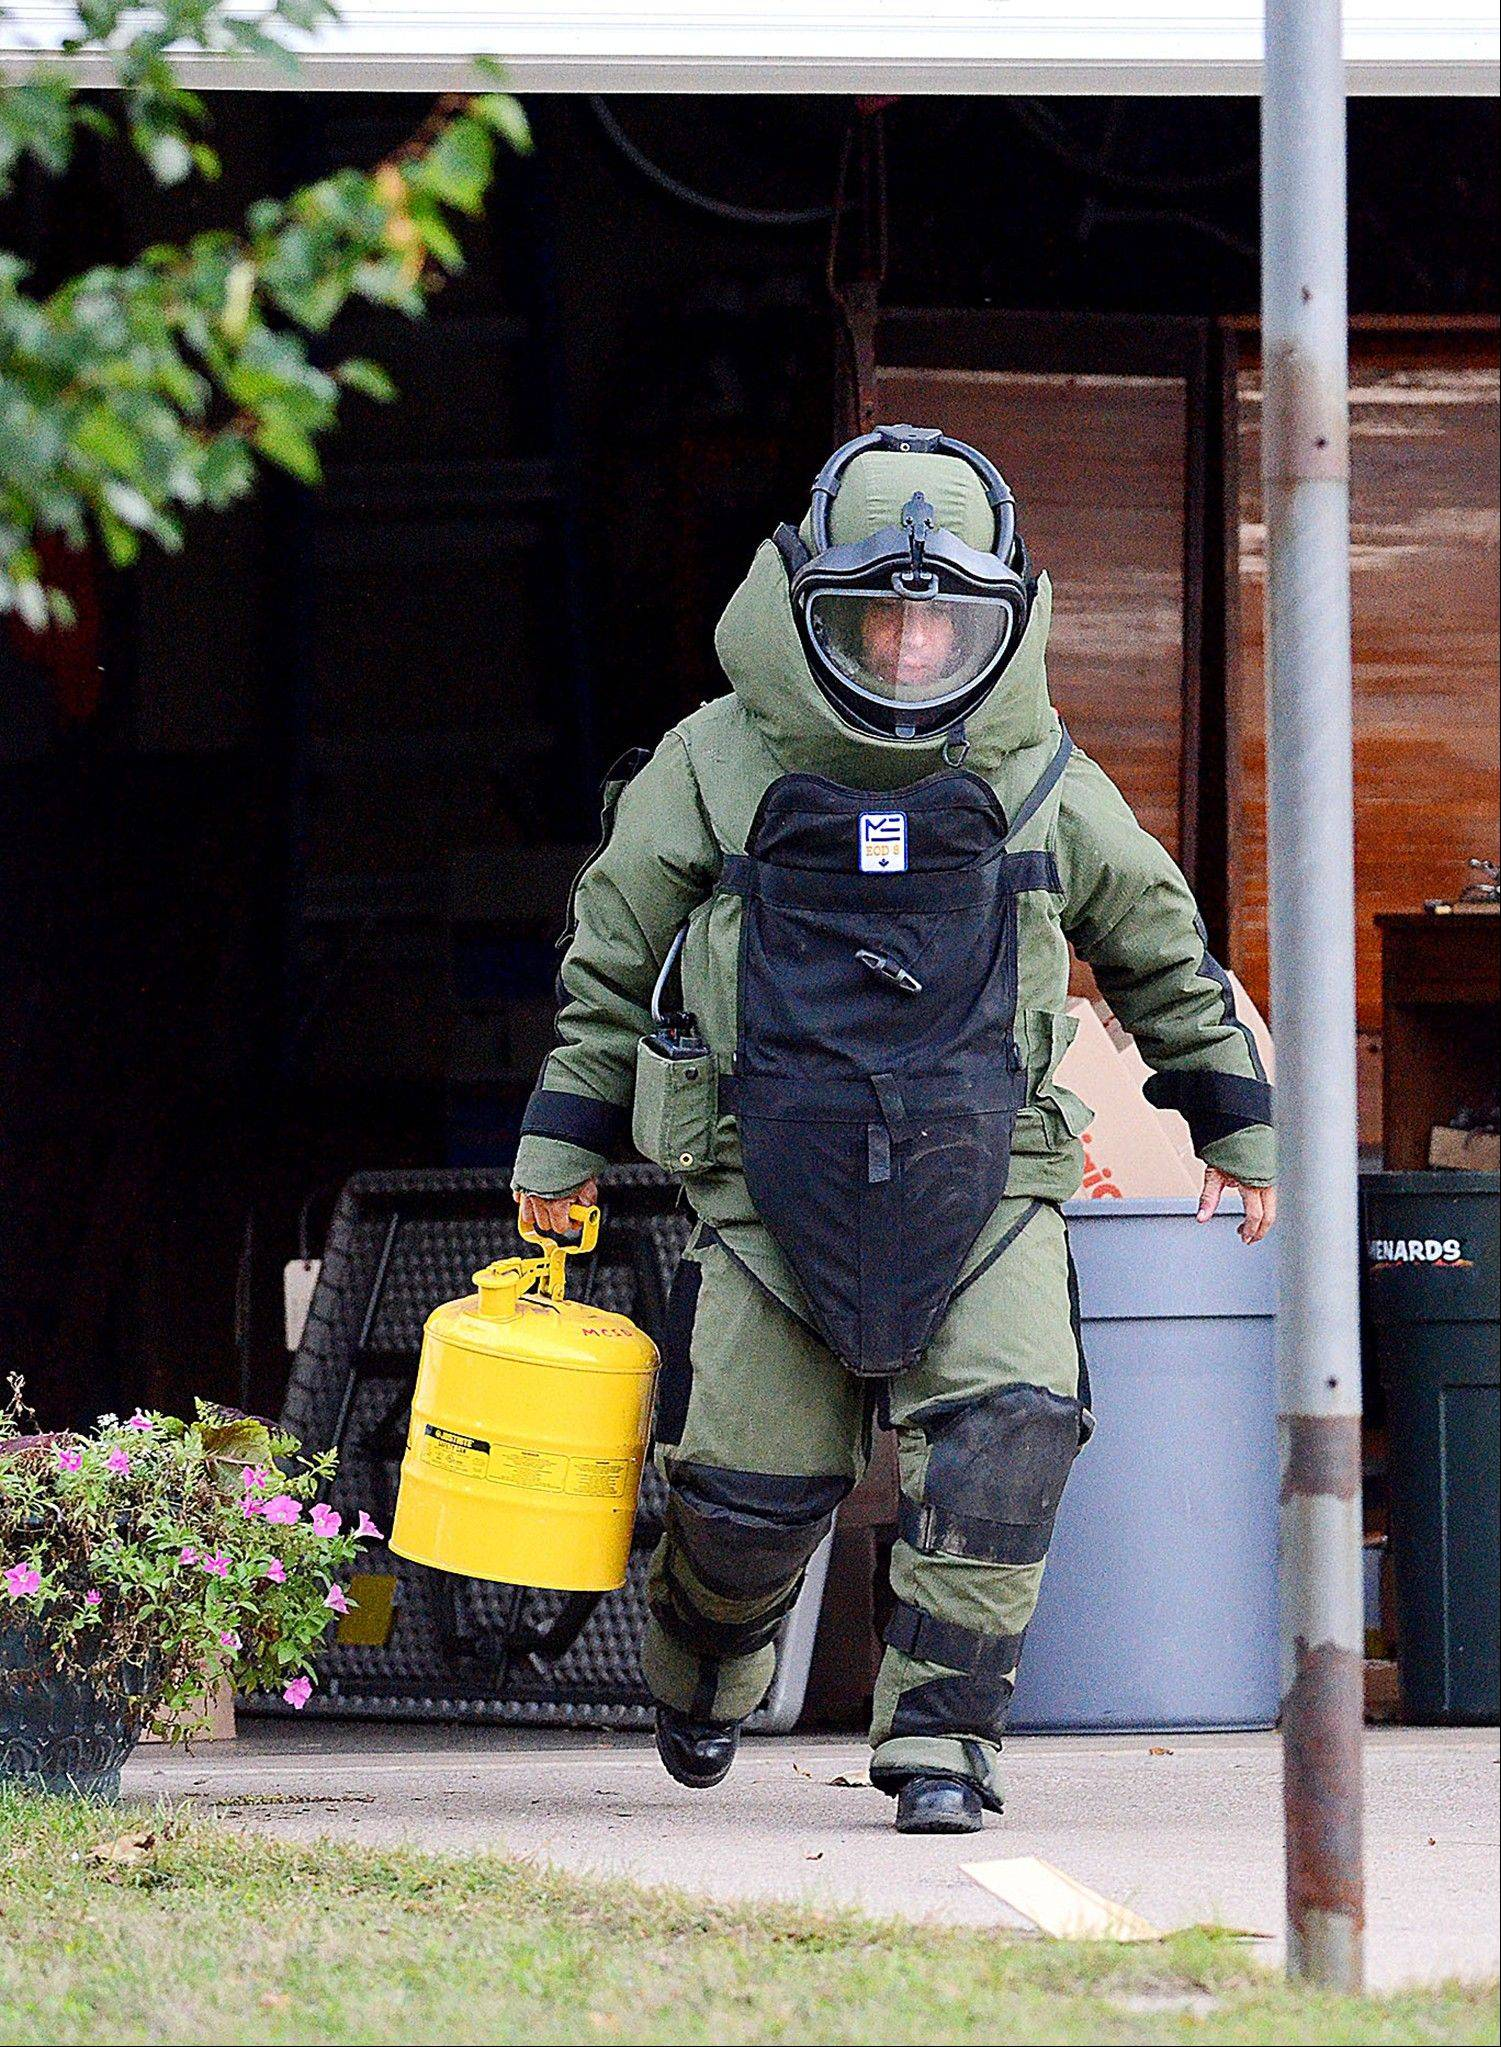 A member of the Marathon Oneida County Bomb Squad responds Thursday for removal of railroad torpedoes in Eau Claire, Wis.